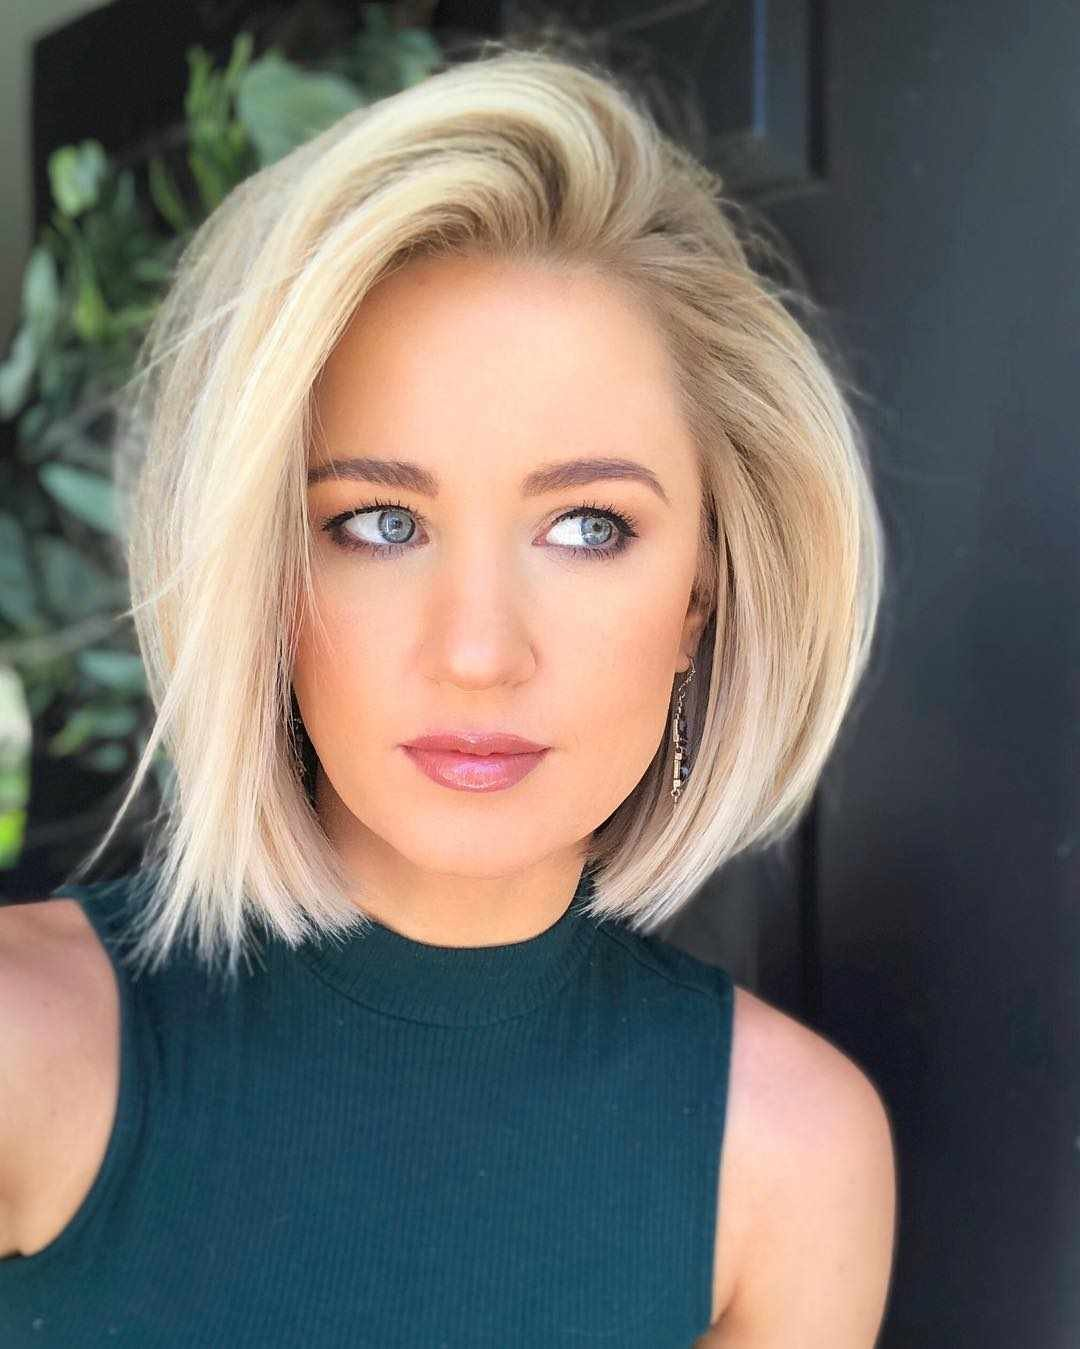 New 50 Hottest Pixie And Bob Hairstyles For 2019 » Short Ideas With Pictures